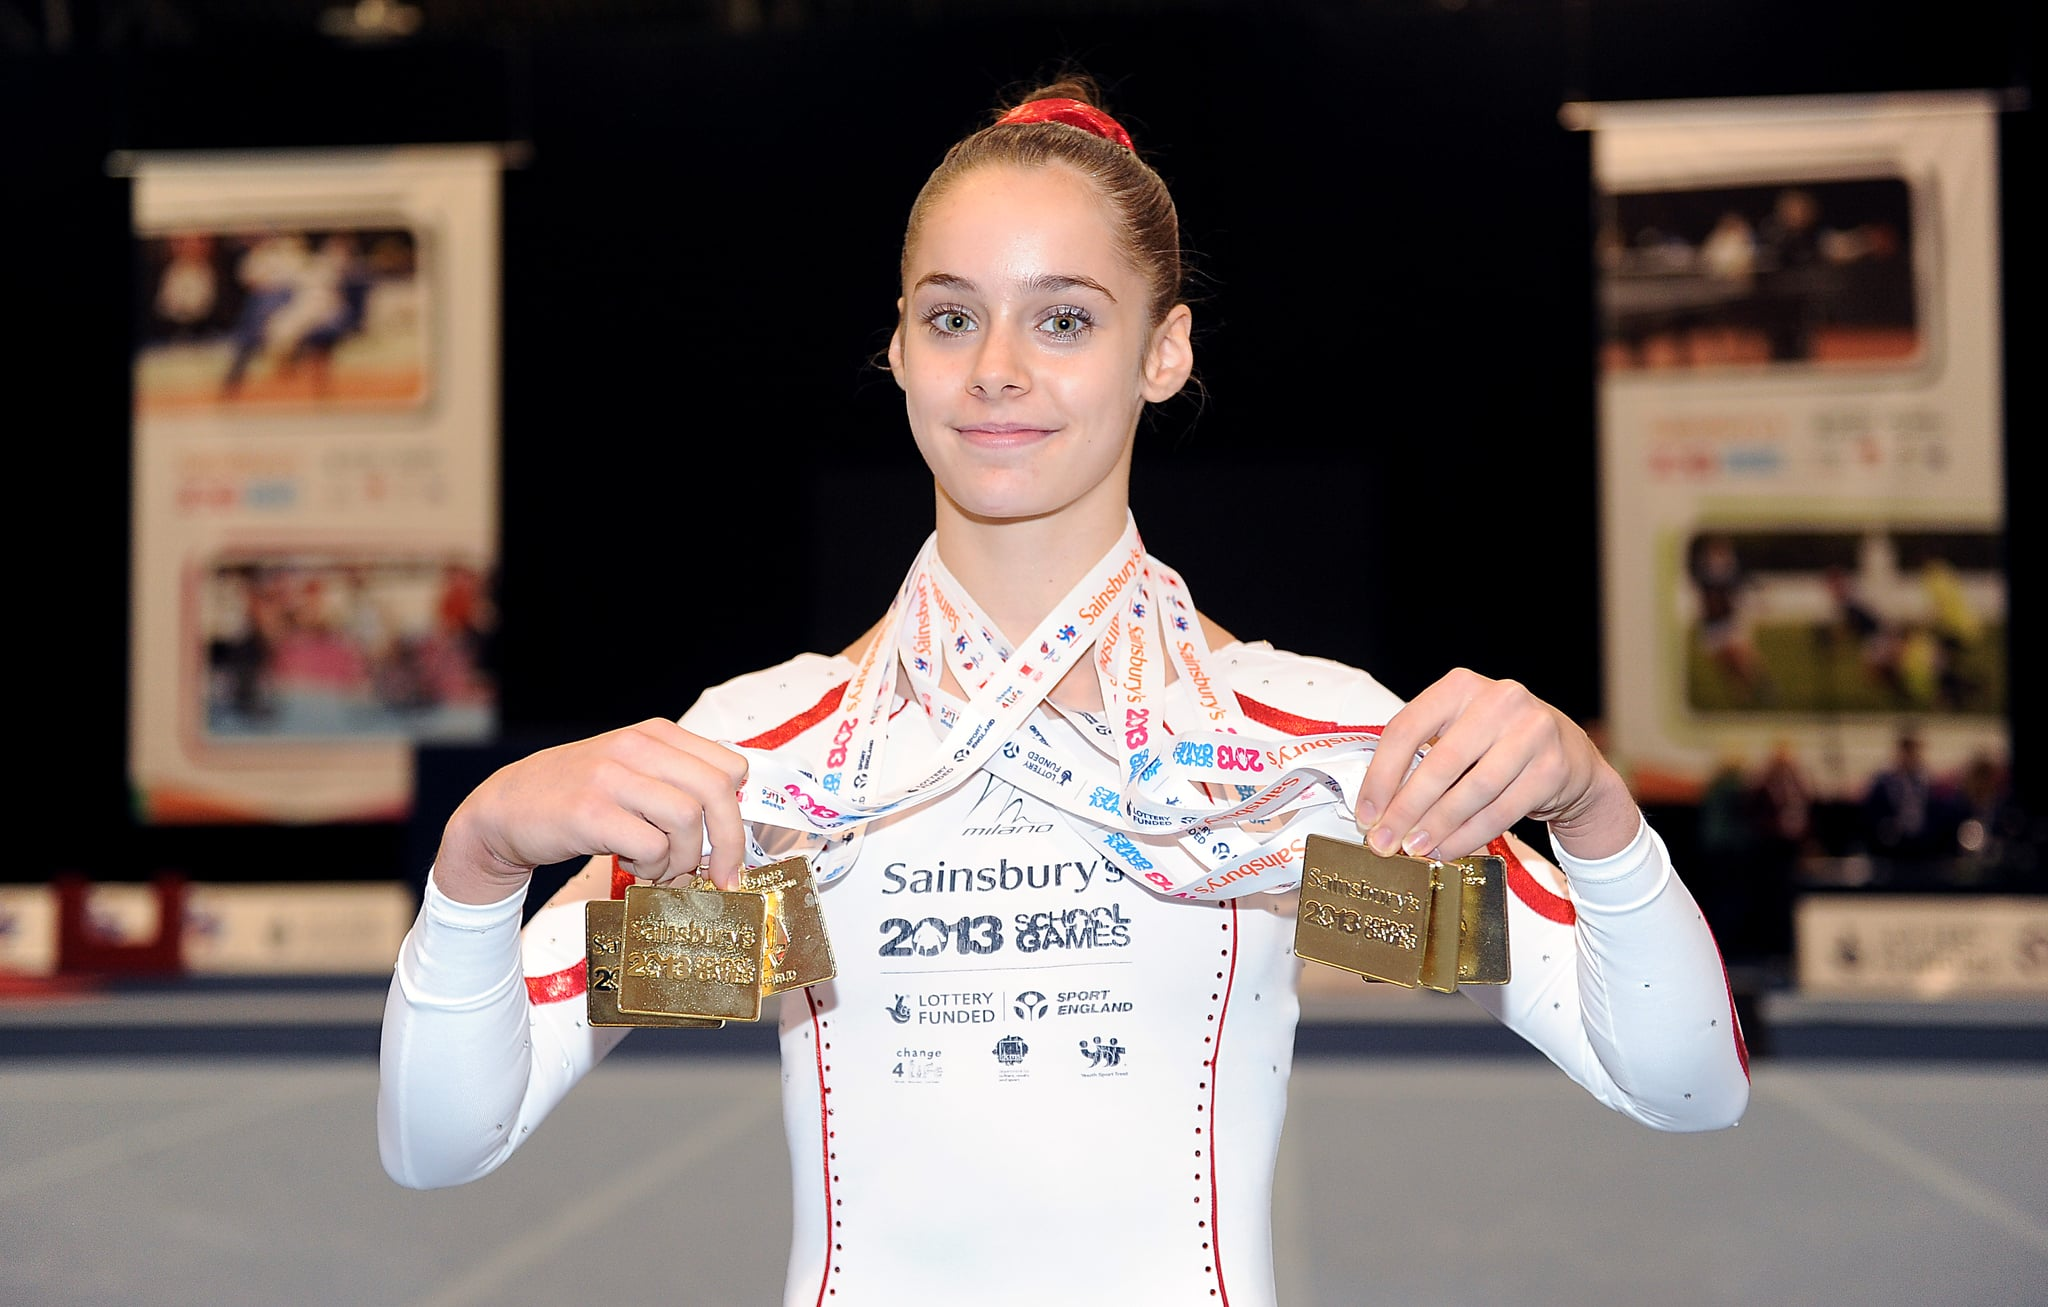 England's Catherine Lyons with her medals from the Gymnastics during day Four of the Sainsbury's 2013 School Games at iceSheffield, Sheffield. PRESS ASSOCIATION Photo. Picture date: Sunday September 15, 2013. Photo credit should read: Nigel French/PA Wire   (Photo by Nigel French/PA Images via Getty Images)